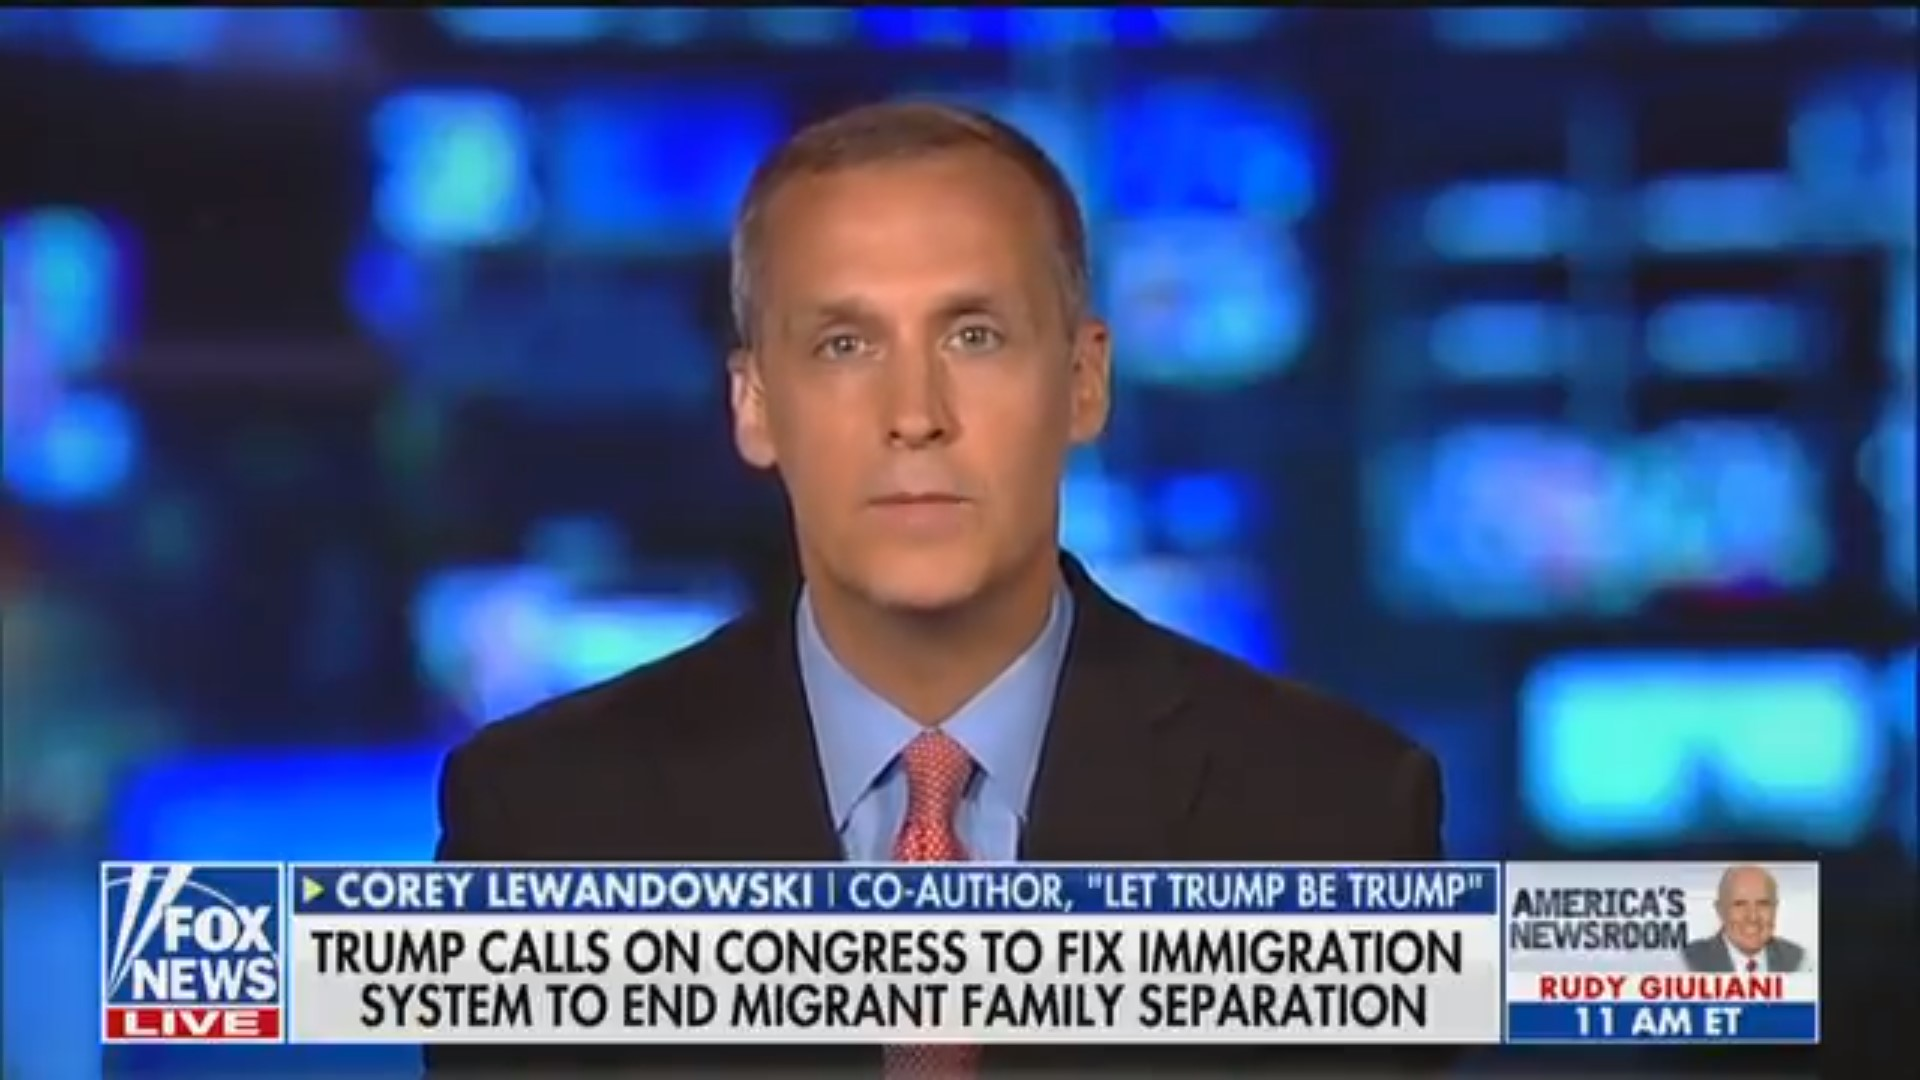 Corey Lewandowski Refuses To Apologize For Mocking 10-Year-Old Girl With Down Syndrome